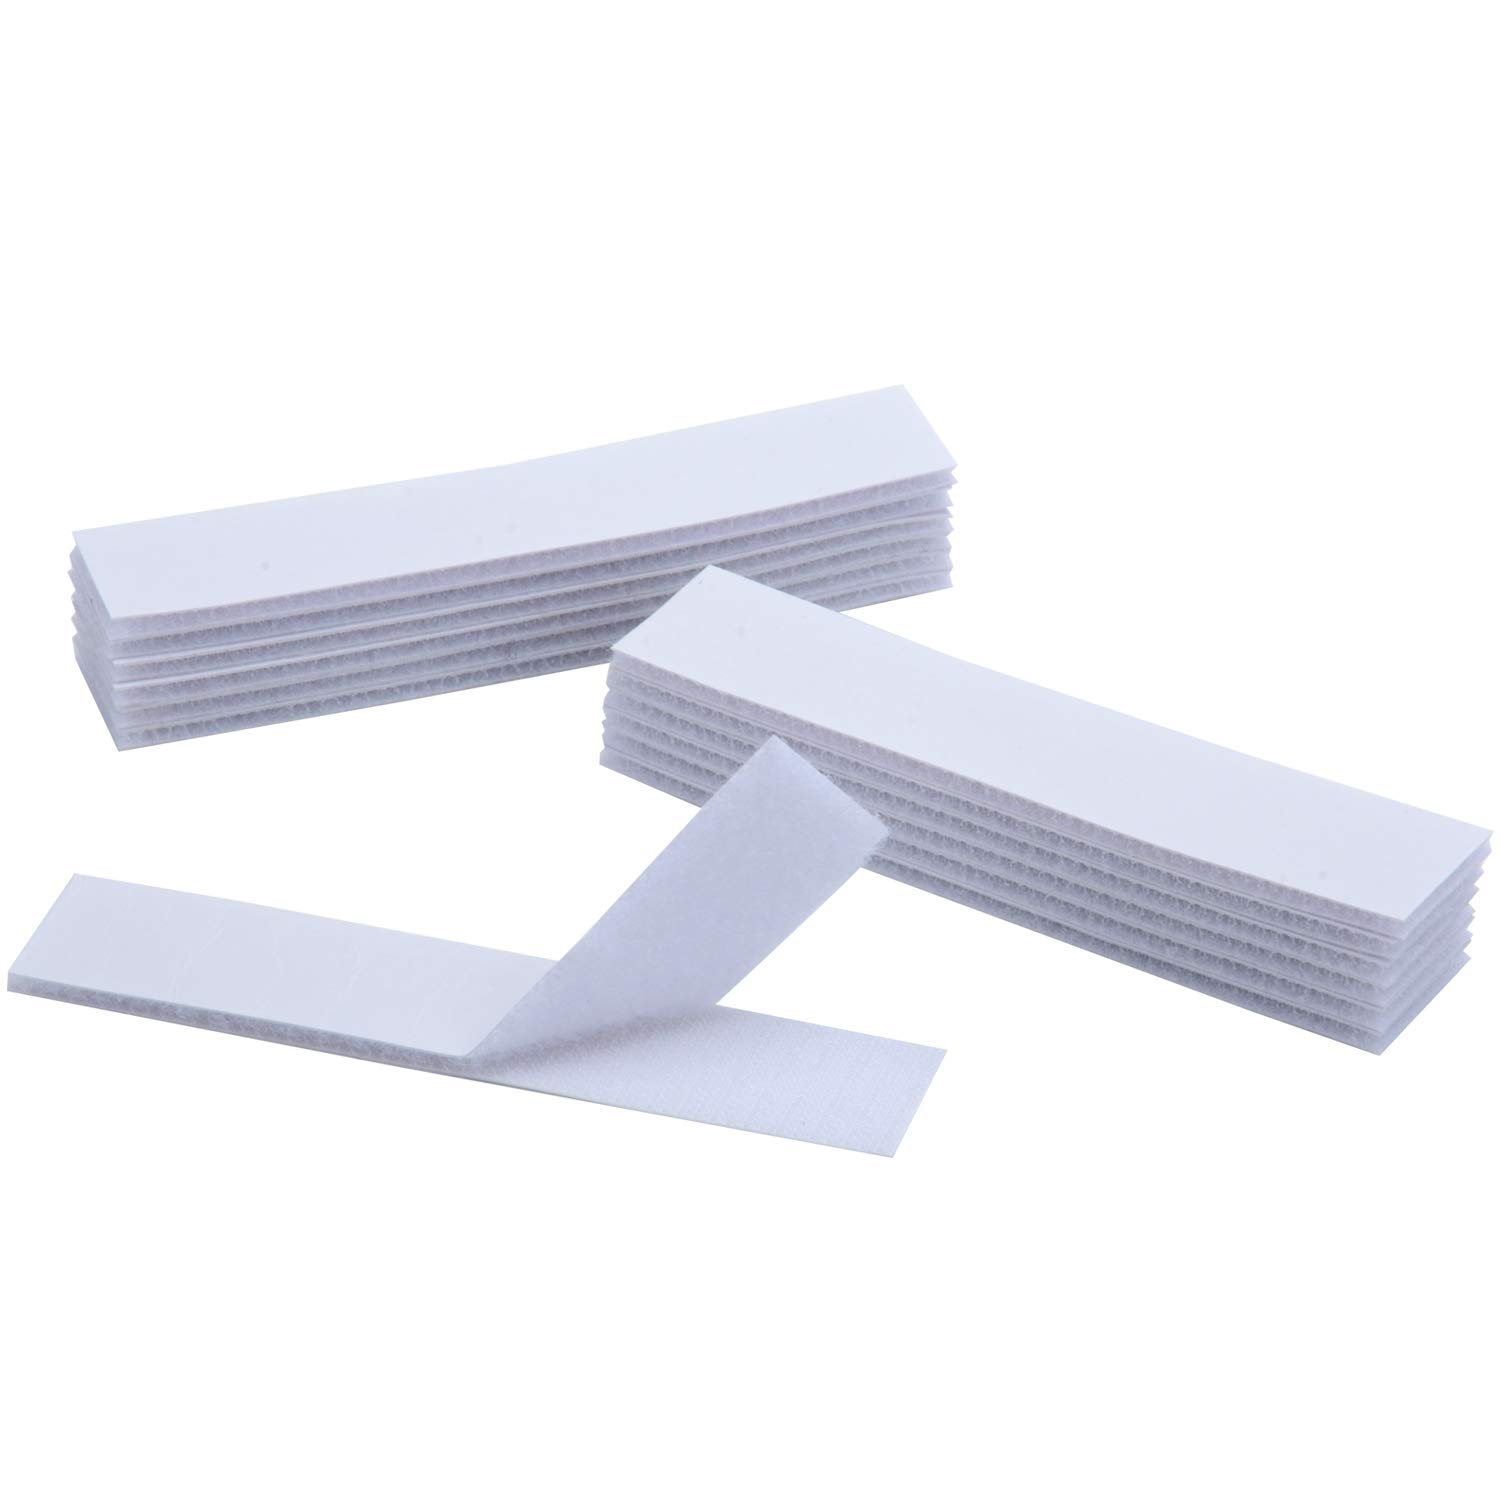 BRAVESHINE 12PCS Double Sided Mounting Squares - 1.2x6 Inch Anti-Slip Sticky Pads - Industrial Strengh Hook and Loop Strips Tape for Home or Office Use - Removable and Adhesive Carpet Gripper - White